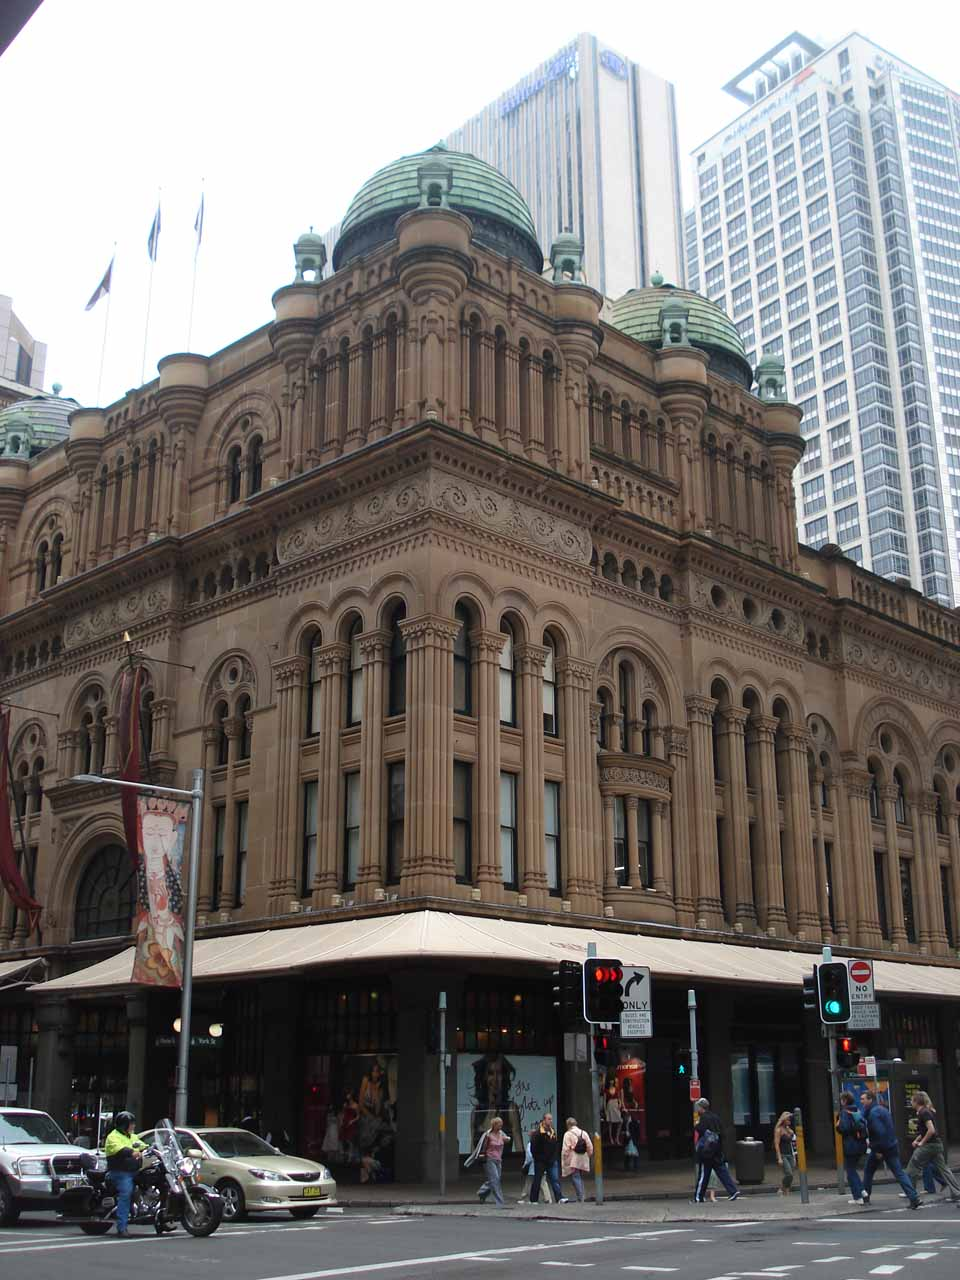 The exterior of an interesting building in the Sydney CBD